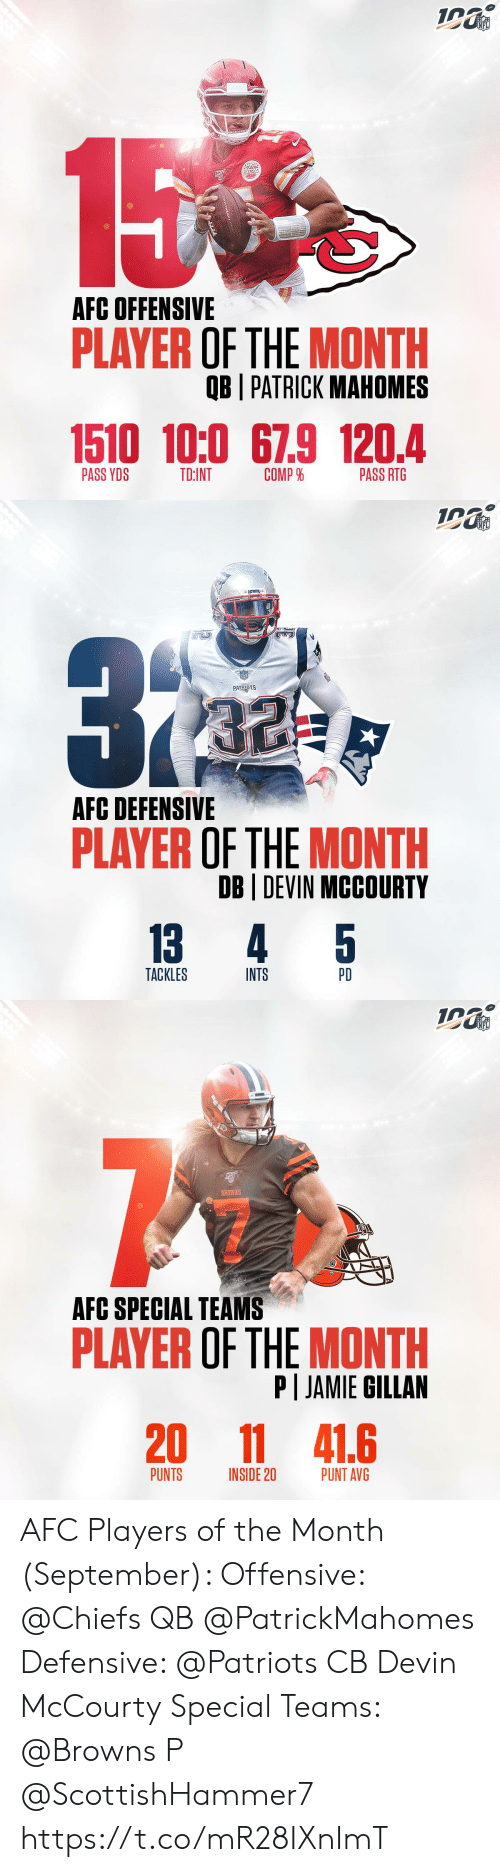 Memes, Nfl, and Patriotic: NFL  15  AFC OFFENSIVE  PLAYER OF THE MONTH  OB I PATRICK MAHOMES  1510 10:0 67.9 120.4  COMP %  PASS YDS  TD:INT  PASS RTG   NFL  ATROTE  PATRIOTS  AFC DEFENSIVE  PLAYER OF THE MONTH  DB DEVIN MCCOURTY  5  13  4  TACKLES  INTS  PD   NFL  BROWNS  AFC SPECIAL TEAMS  PLAYER OF THE MONTH  P JAMIE GILLAN  20  11 41.6  PUNTS  PUNT AVG  INSIDE 20 AFC Players of the Month (September):   Offensive: @Chiefs QB @PatrickMahomes  Defensive: @Patriots CB Devin McCourty Special Teams: @Browns P @ScottishHammer7 https://t.co/mR28IXnImT